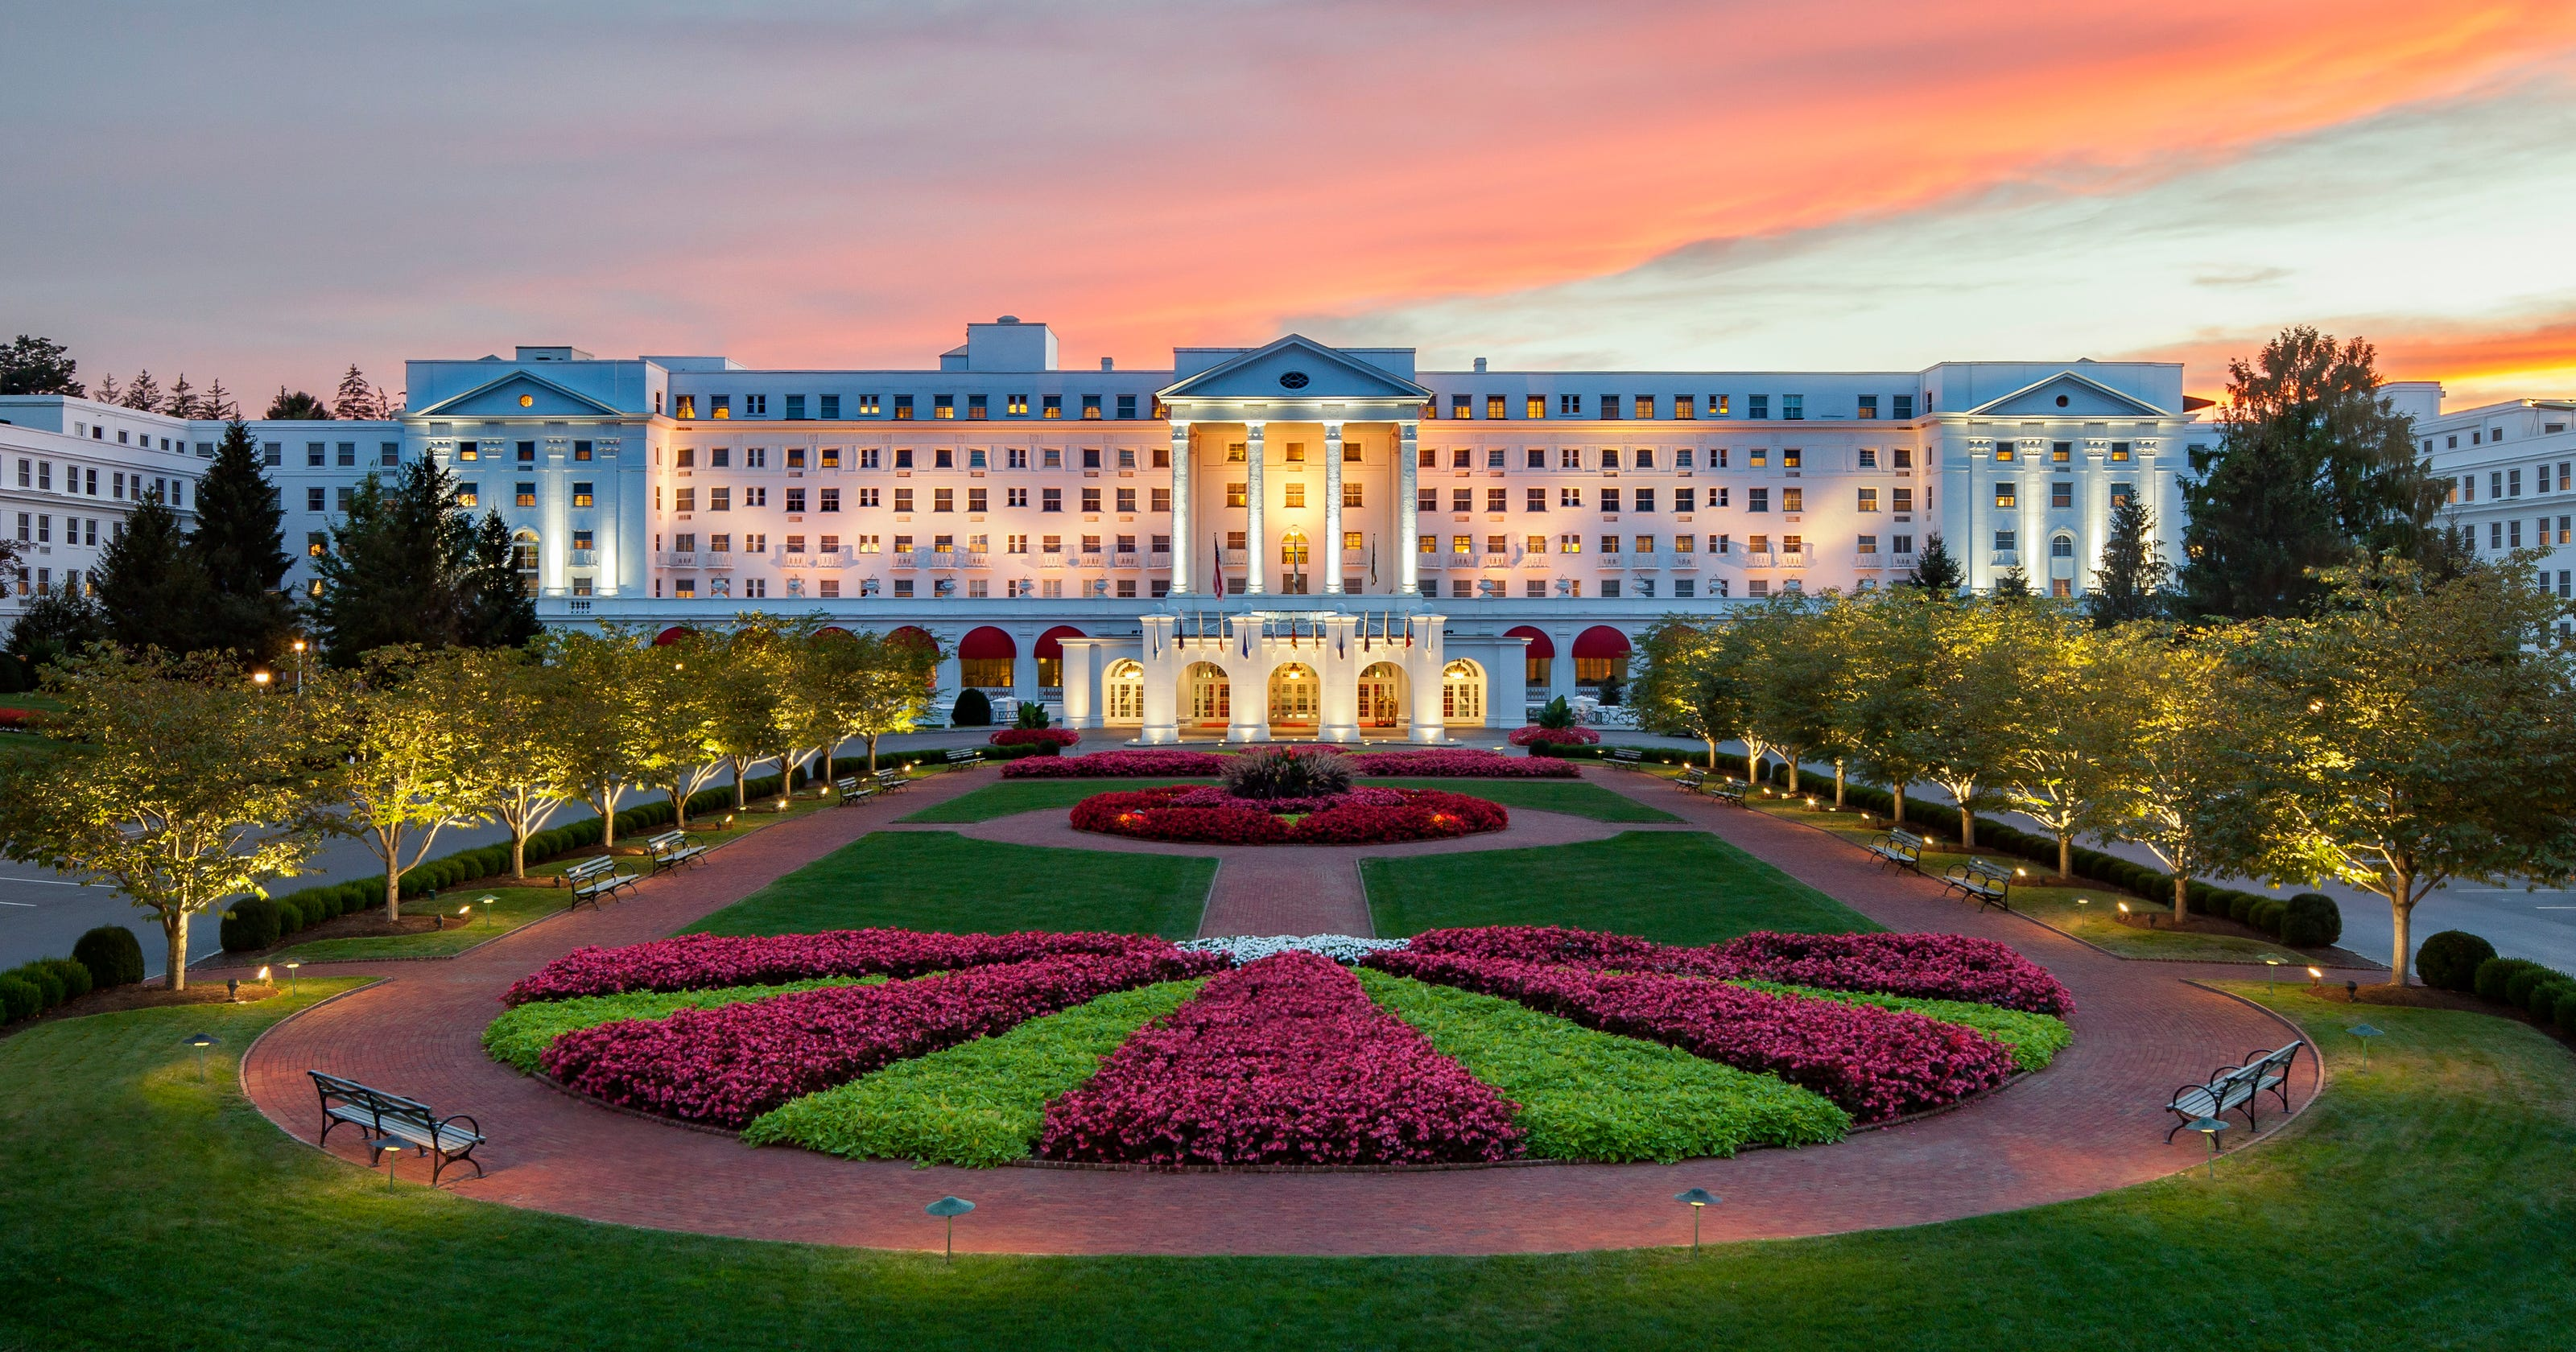 The Greenbrier, Welcoming Guests Since 1778